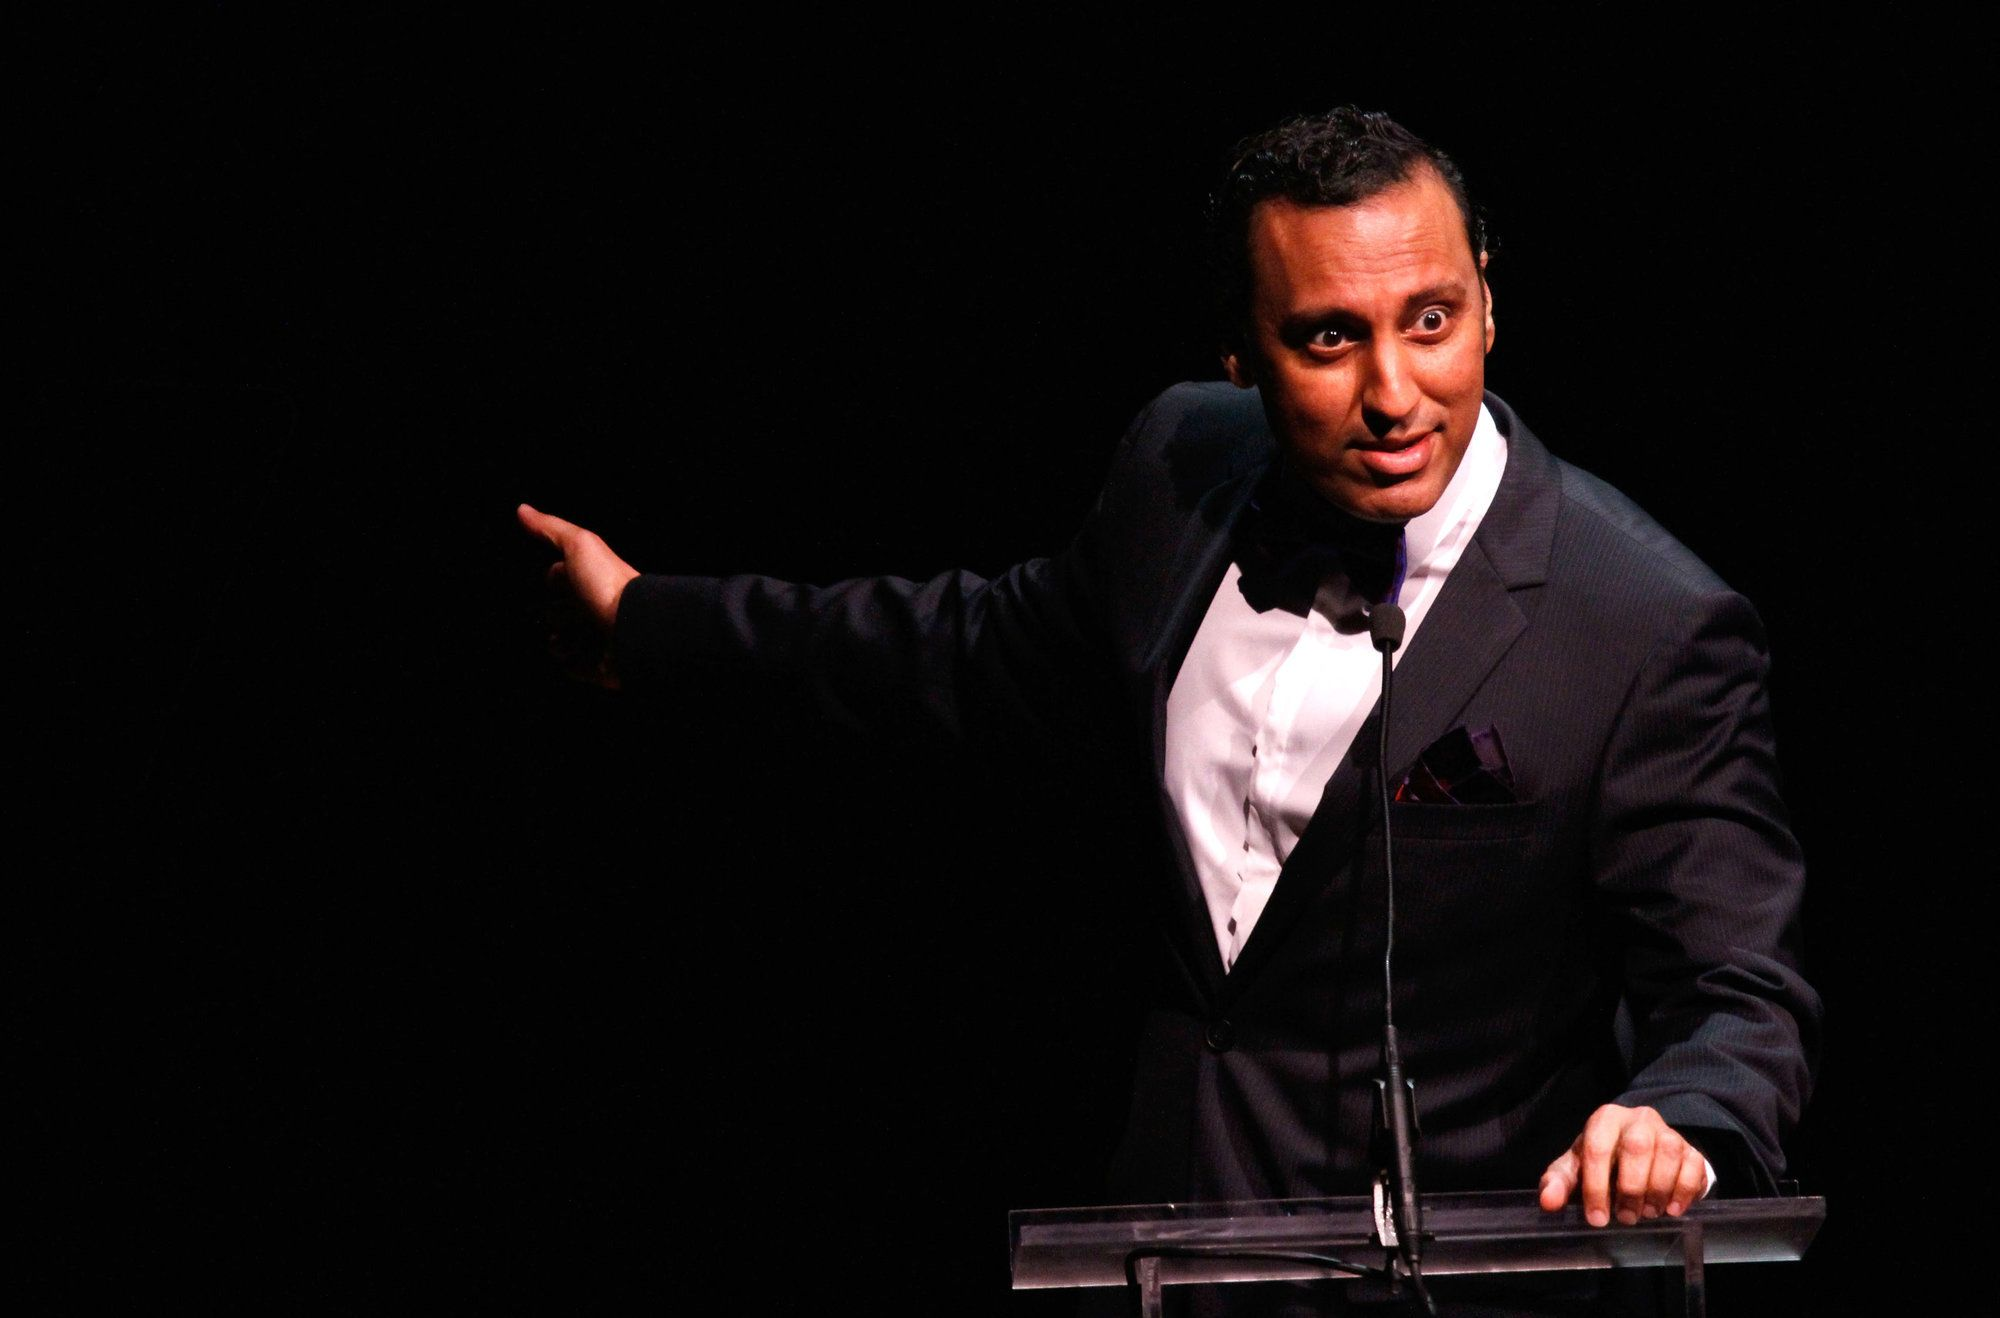 NEW YORK, NY - MAY 05:  Host Aasif Mandvi speaks onstage at the 28th Annual Lucille Lortel Awards on May 5, 2013 in New York City.  (Photo by Janette Pellegrini/Getty Images for Lucille Lortel Awards)